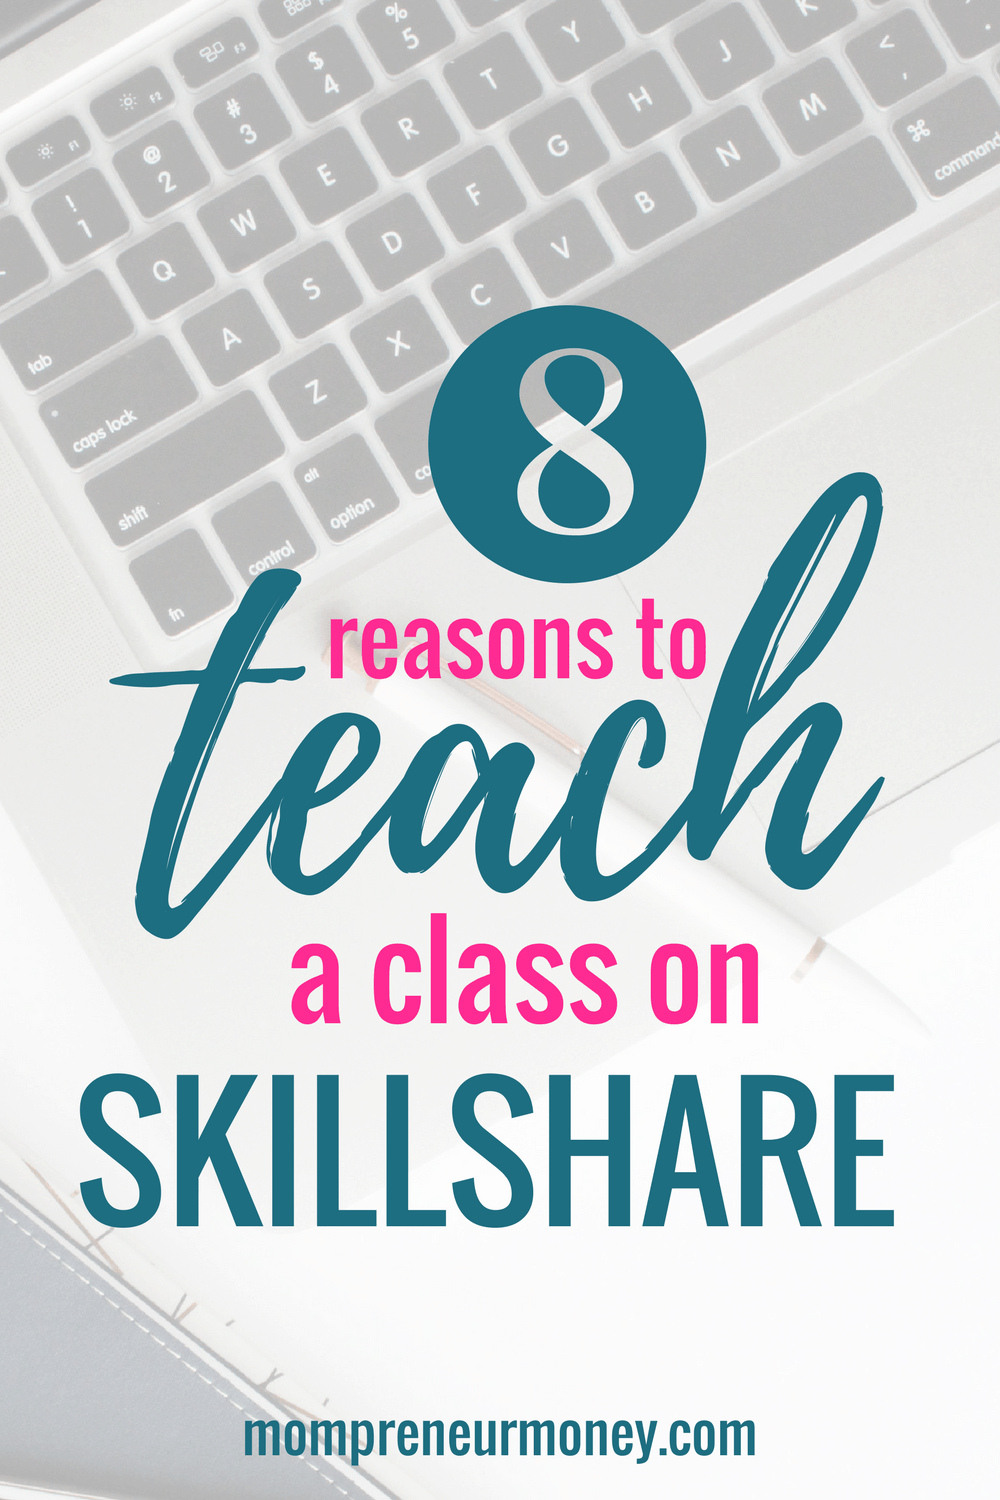 Kari Sayers Pinterest Templates_8 reasons Skillshare